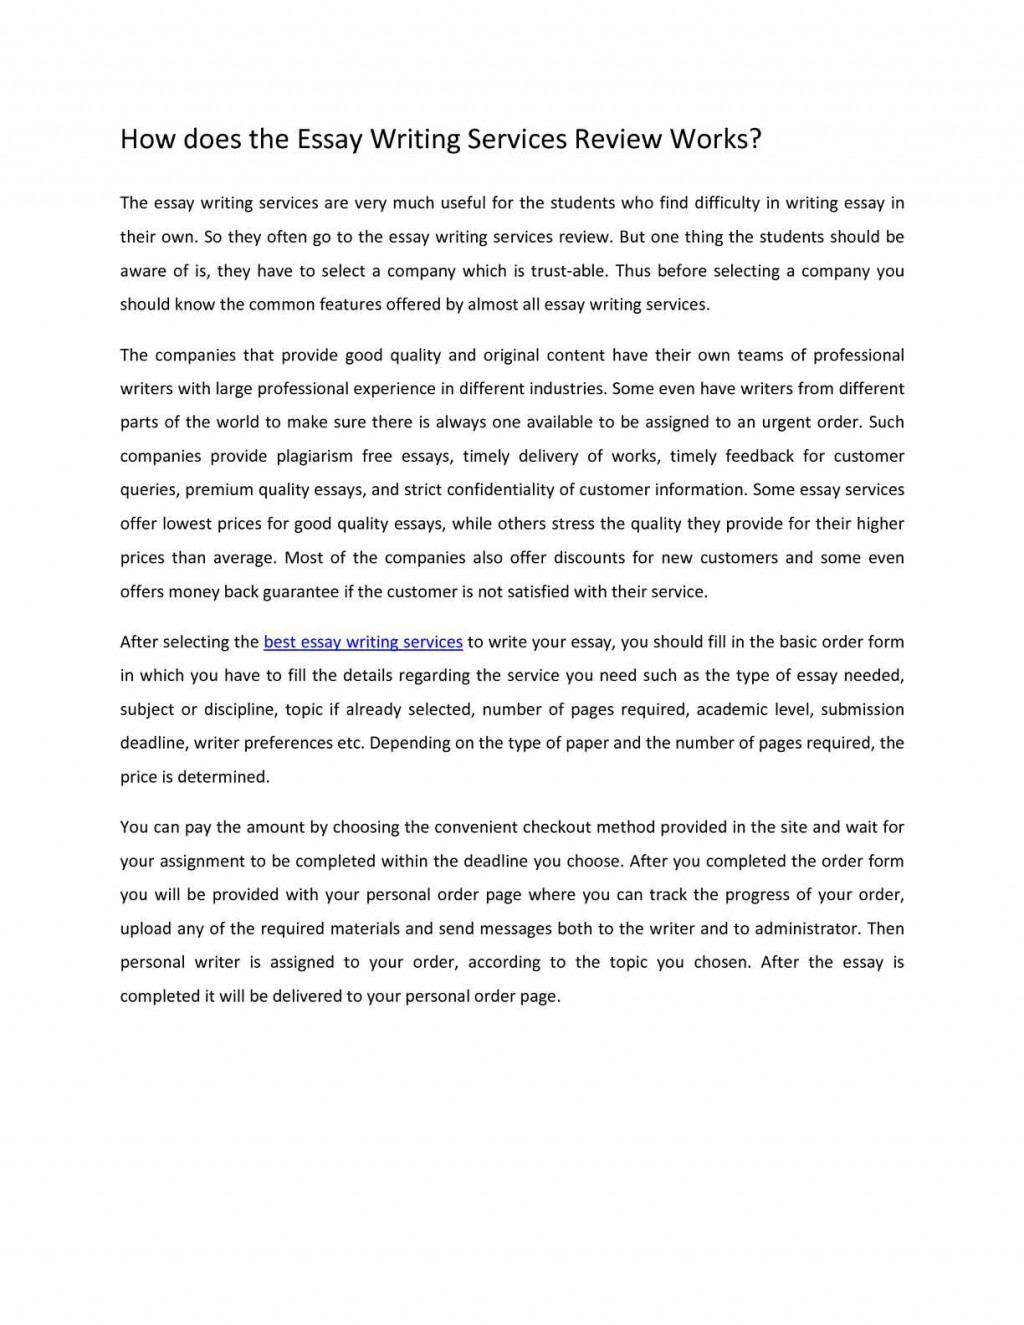 024 Essay Example P1 Best Help Impressive Review Writing Services Uk Reviews Service Large